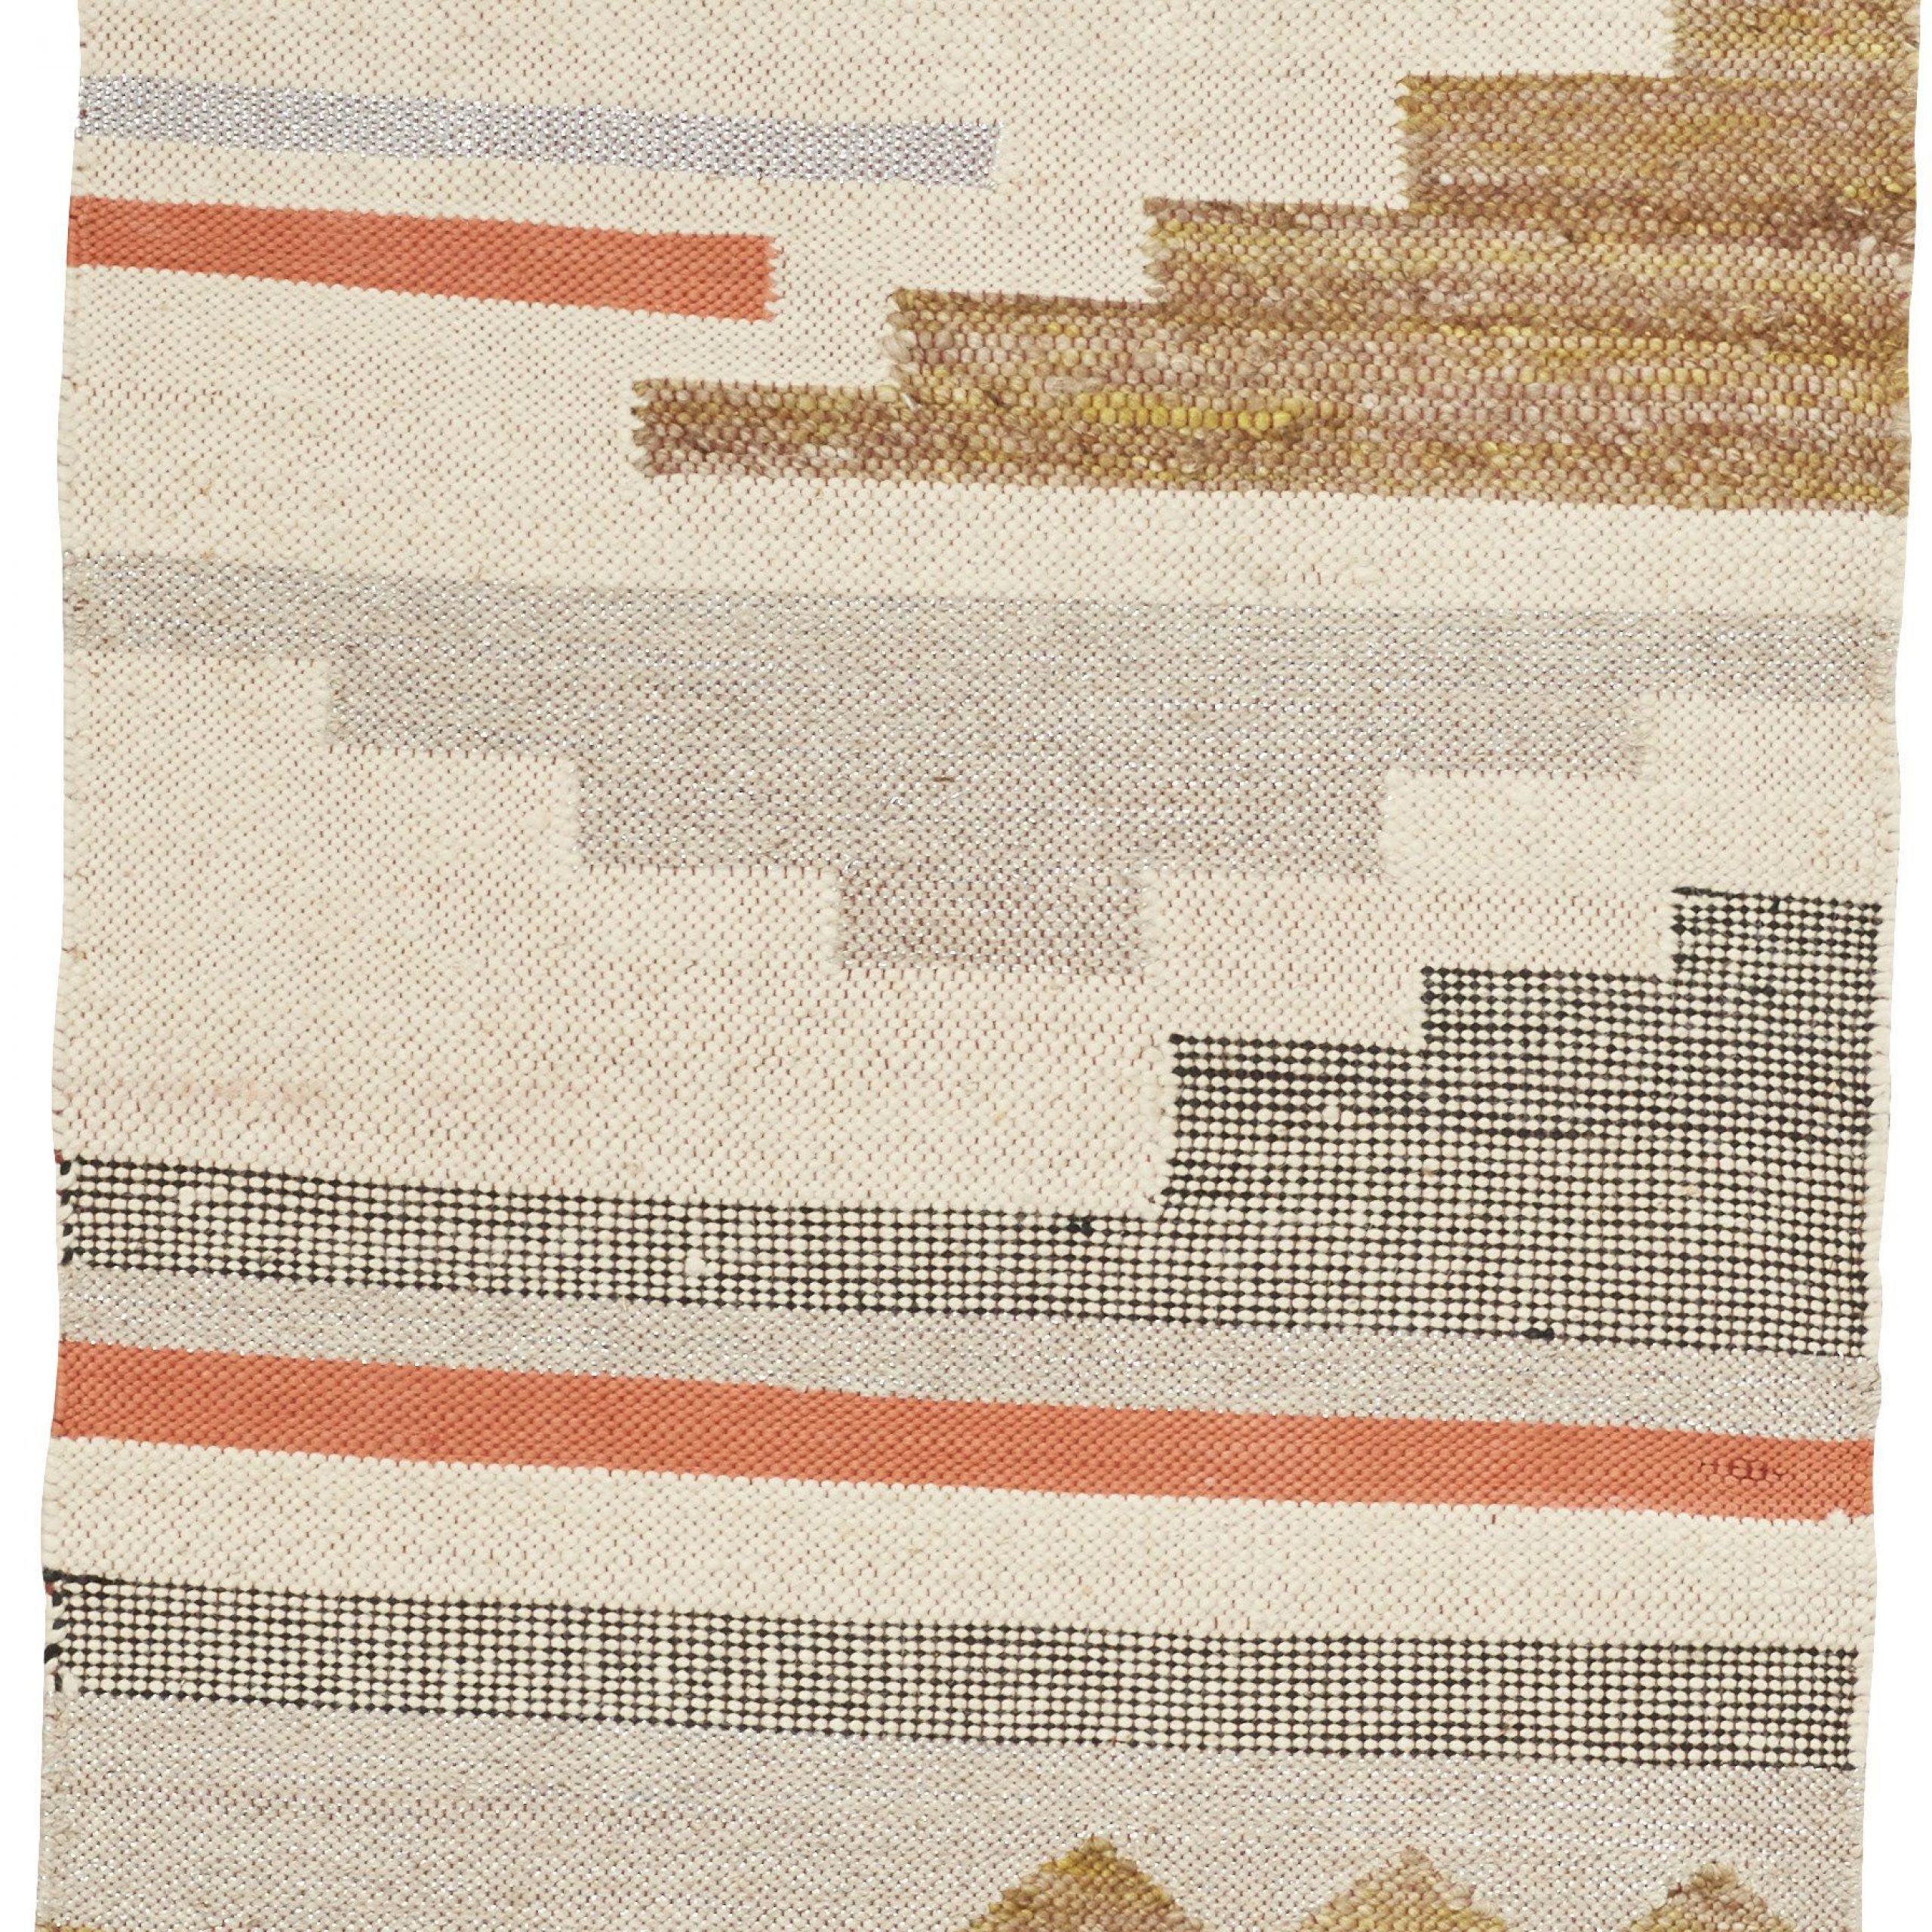 Corrigan Studio Hand Woven Wall Hanging | Wayfair | Wool Inside Most Current Blended Fabric Wall Hangings With Hanging Accessories Included (View 6 of 20)